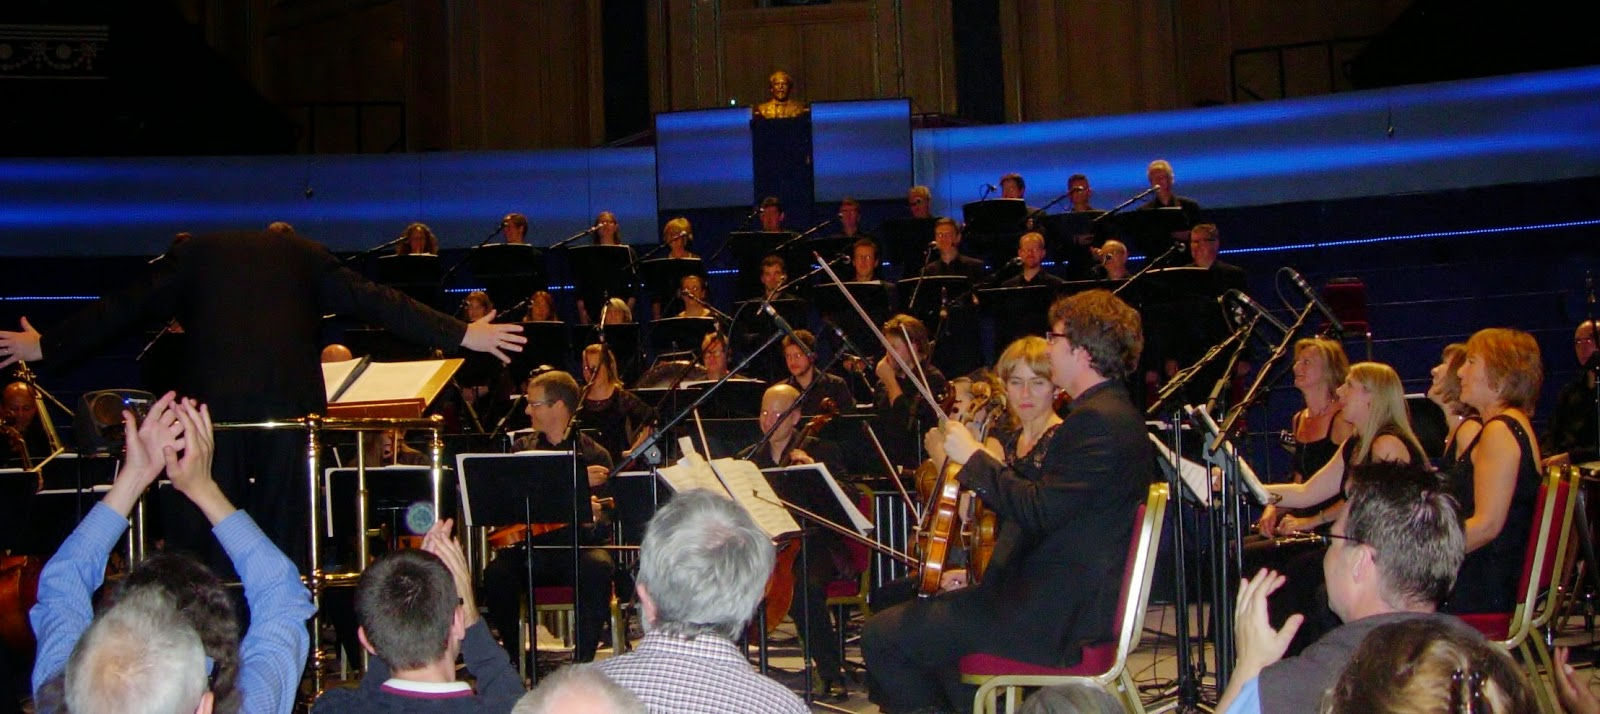 Endymion at the Proms